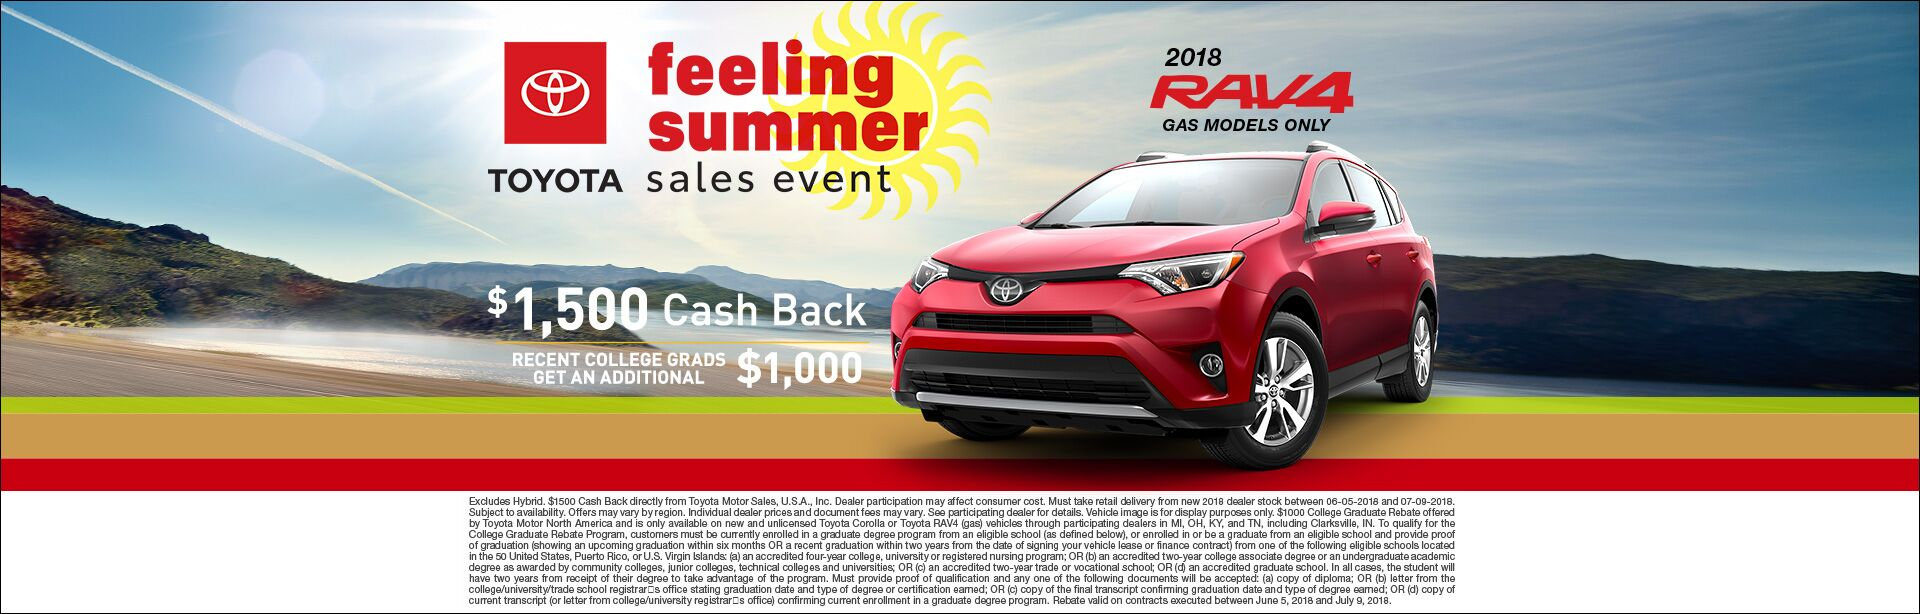 Feeling Summer Rav4 Cash Back